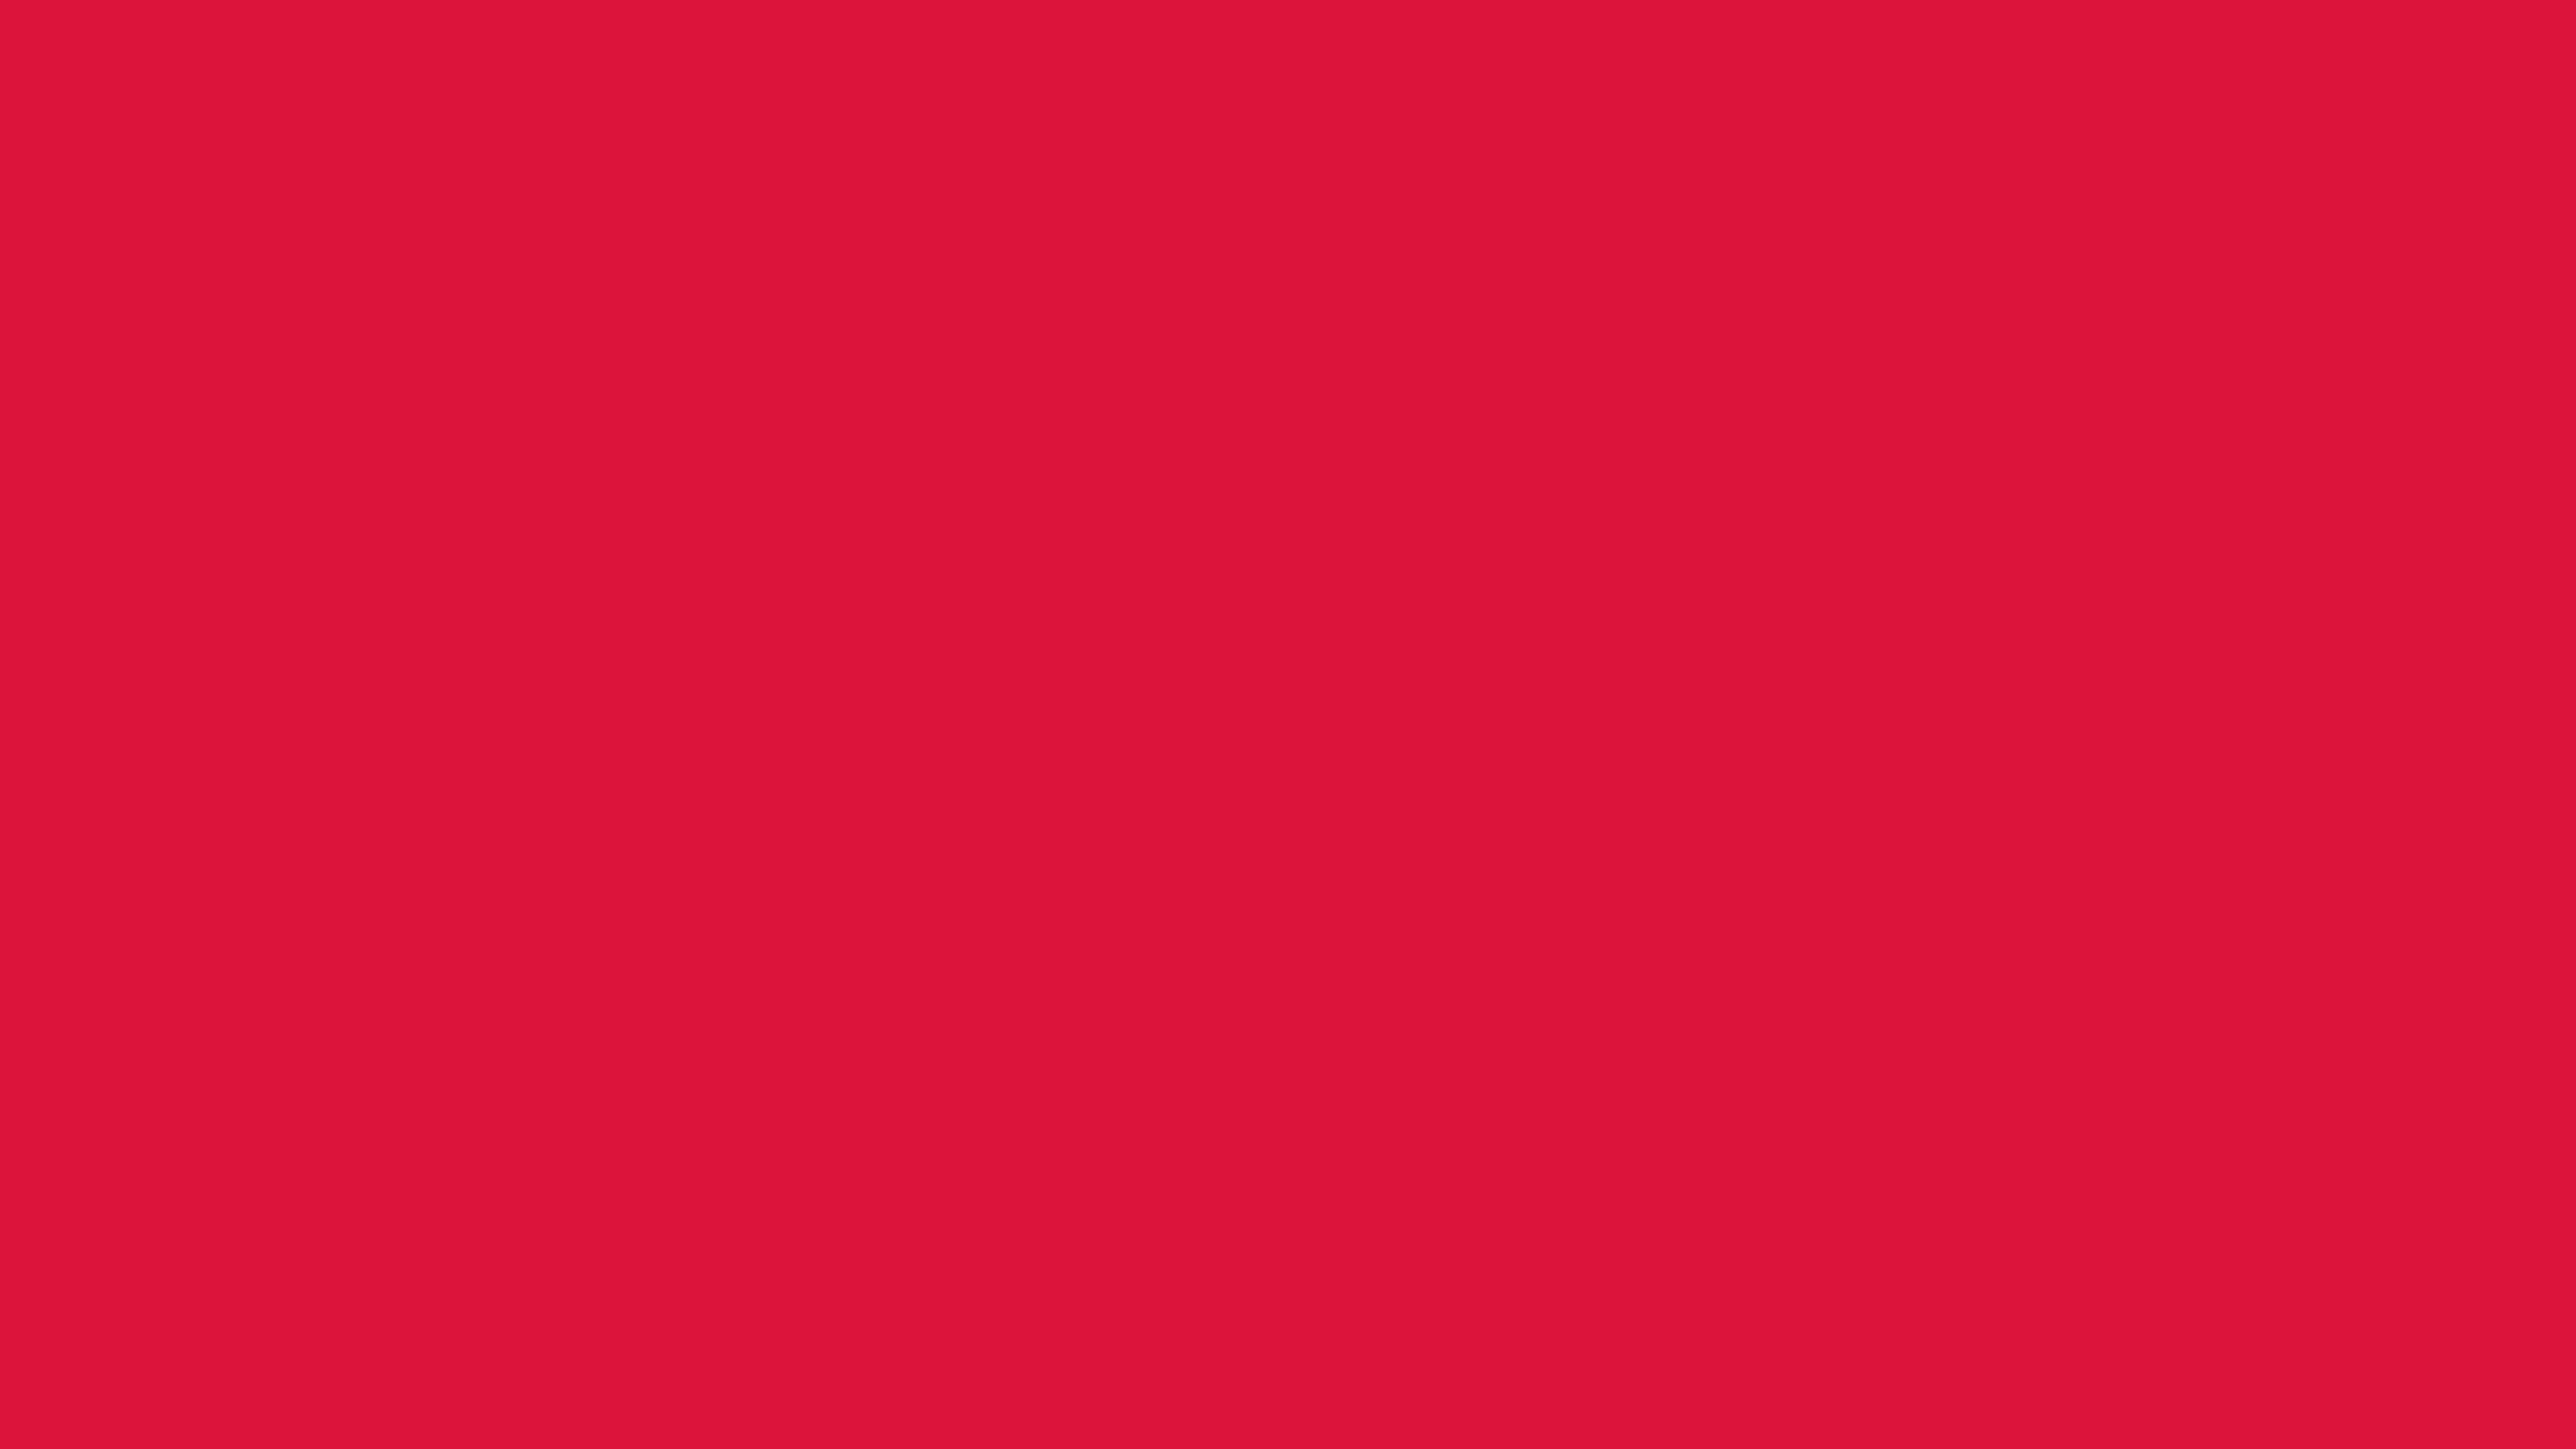 4096x2304 Crimson Solid Color Background